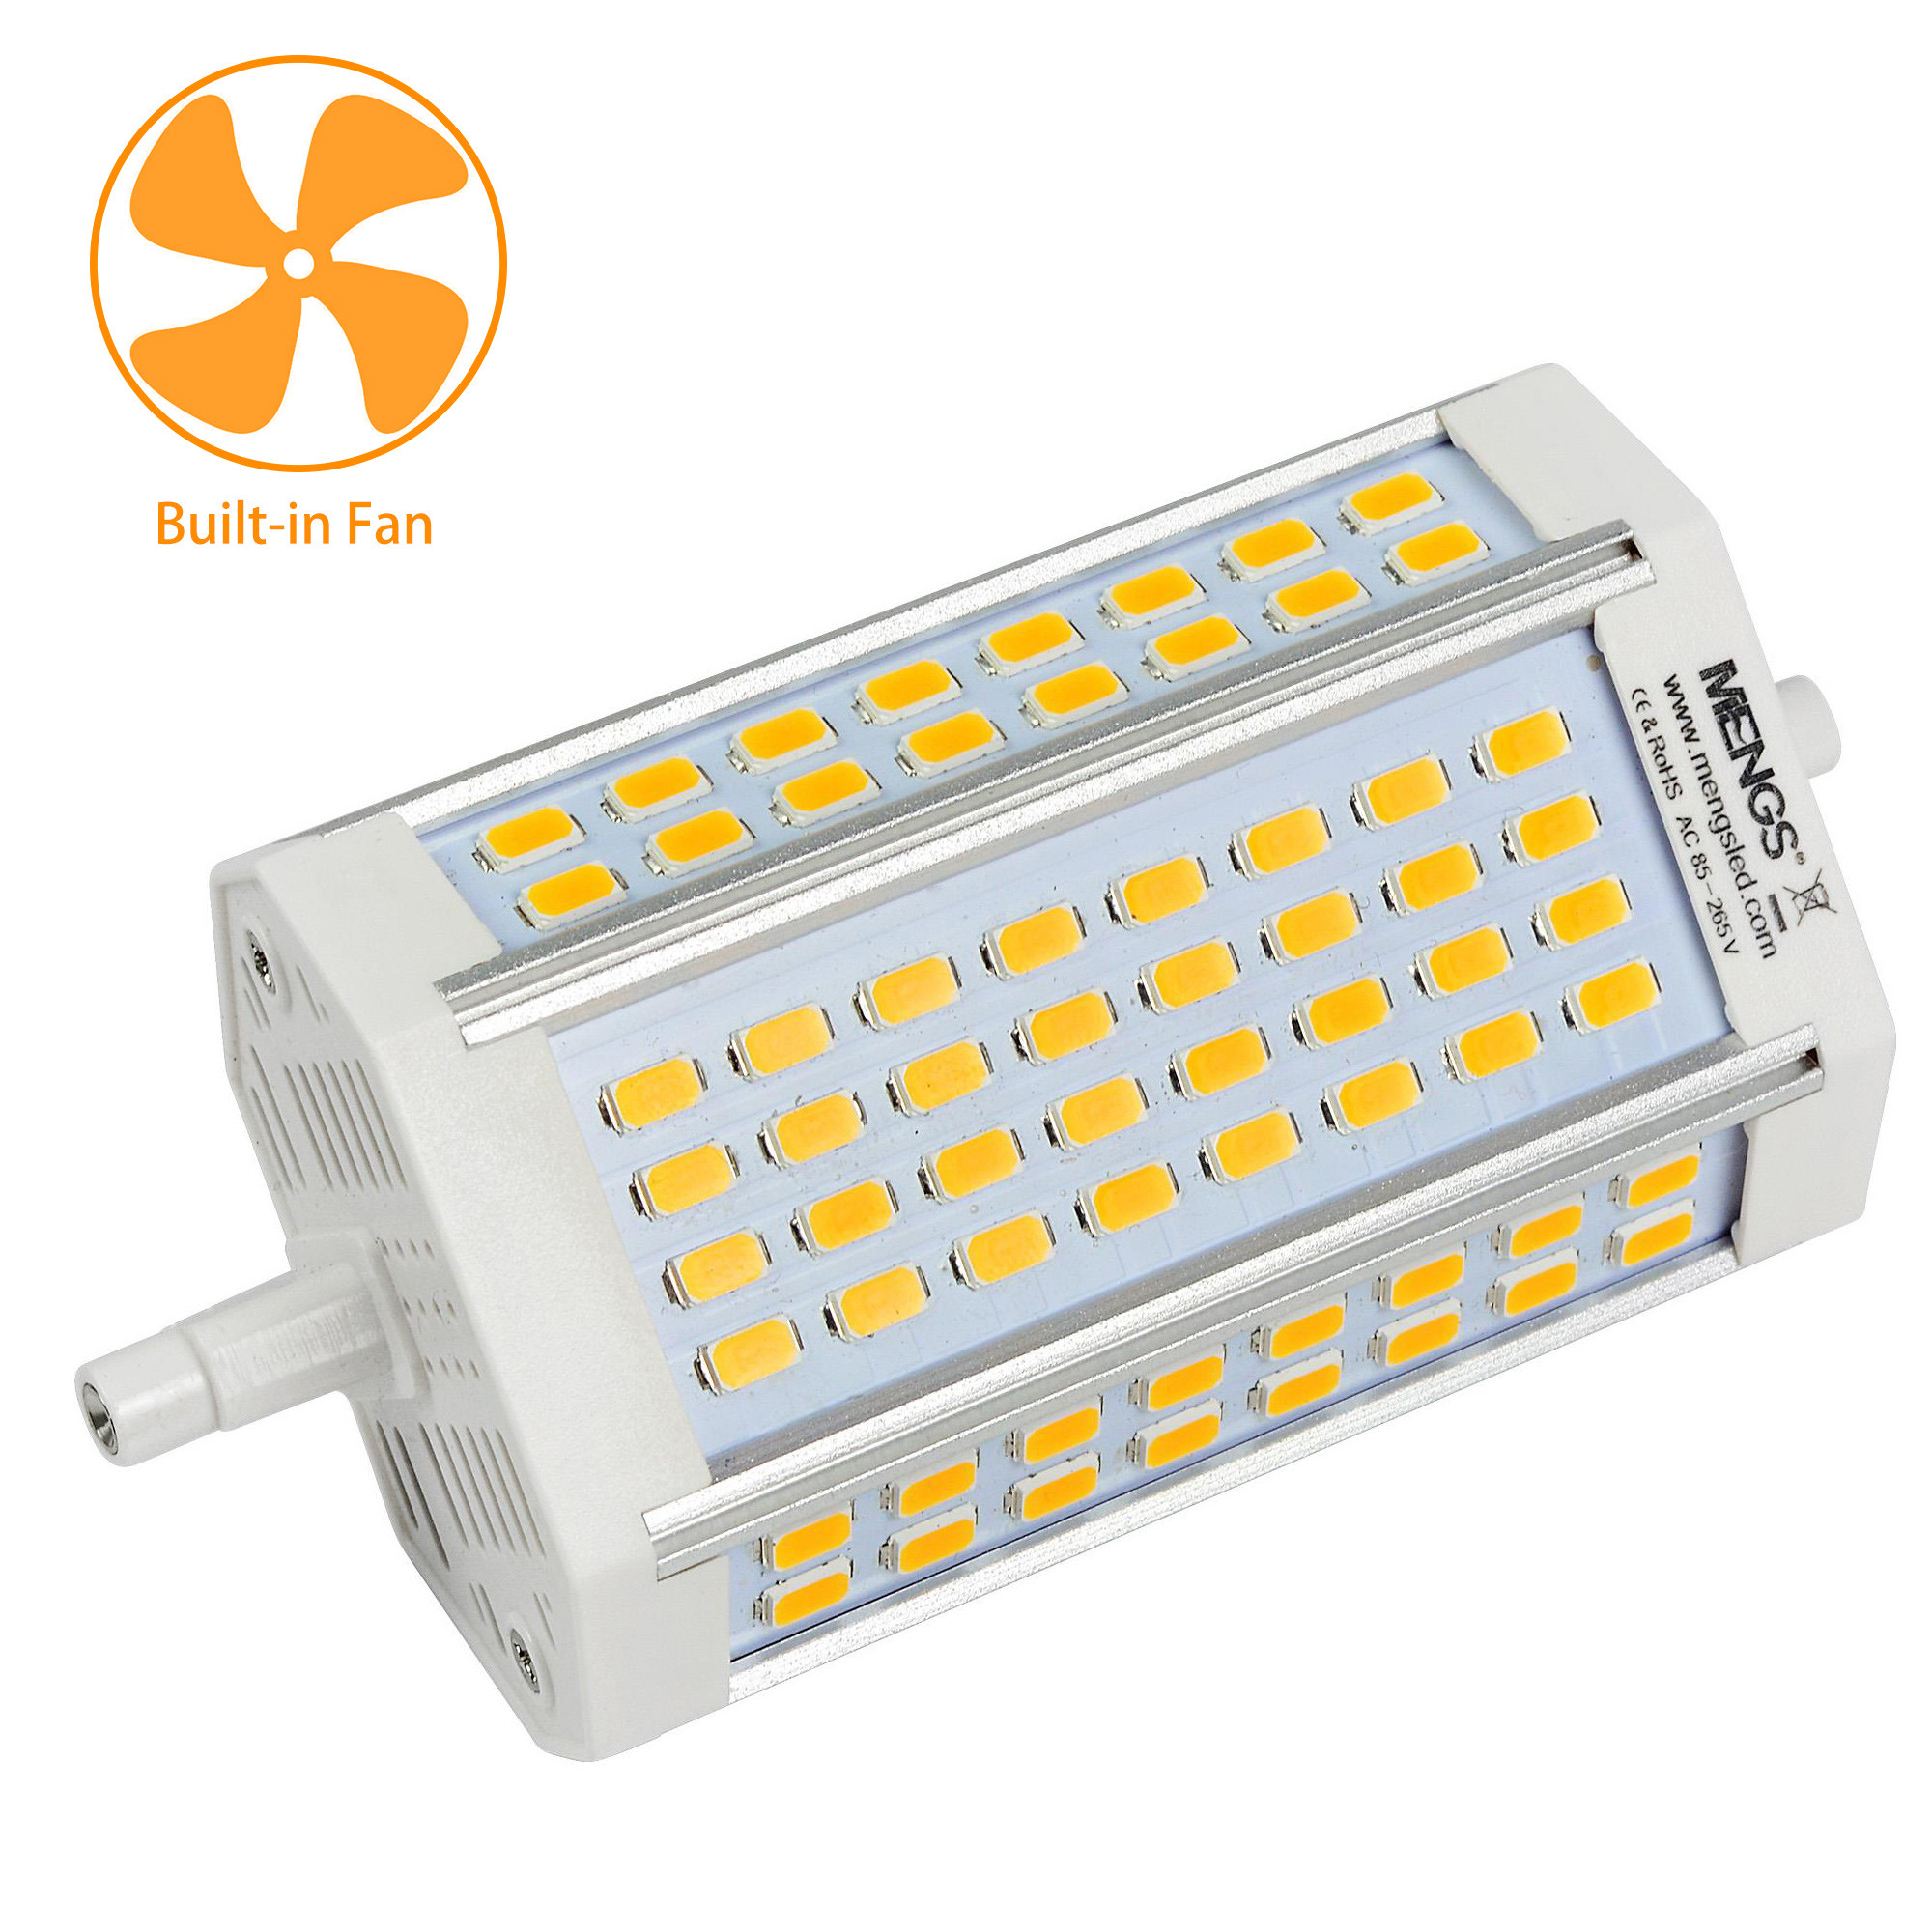 MENGS® R7s 30W LED Flood Light 64x 5730 SMD With Cooling Fan LED Bulb Lamp AC 85-265V In Warm White Energy-Saving Light